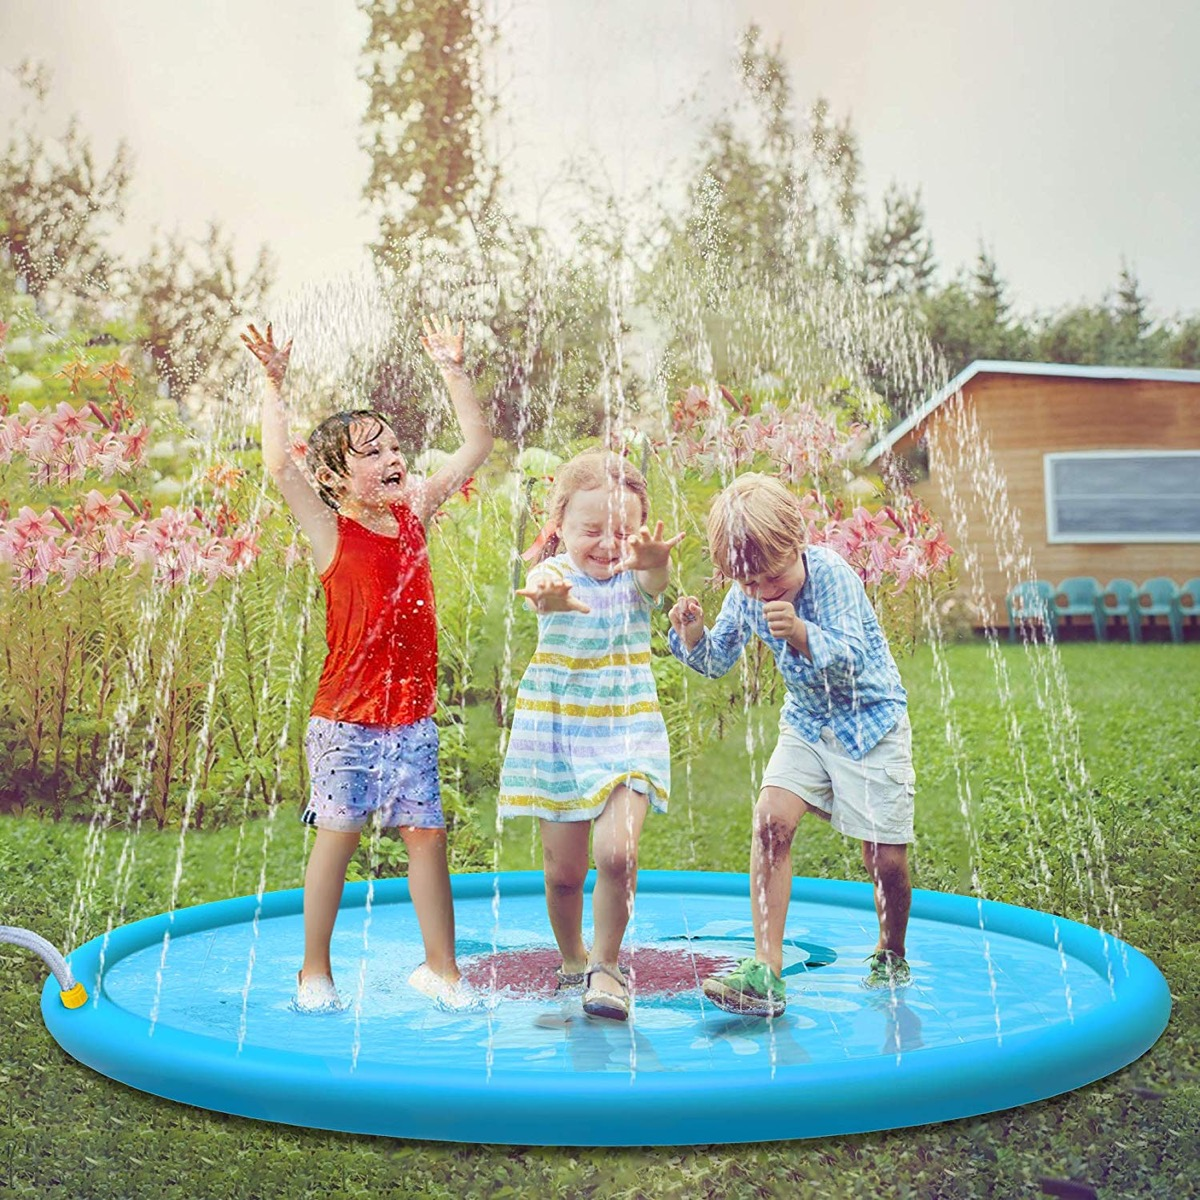 three children playing on sprinkler, best outdoor toys for toddlers